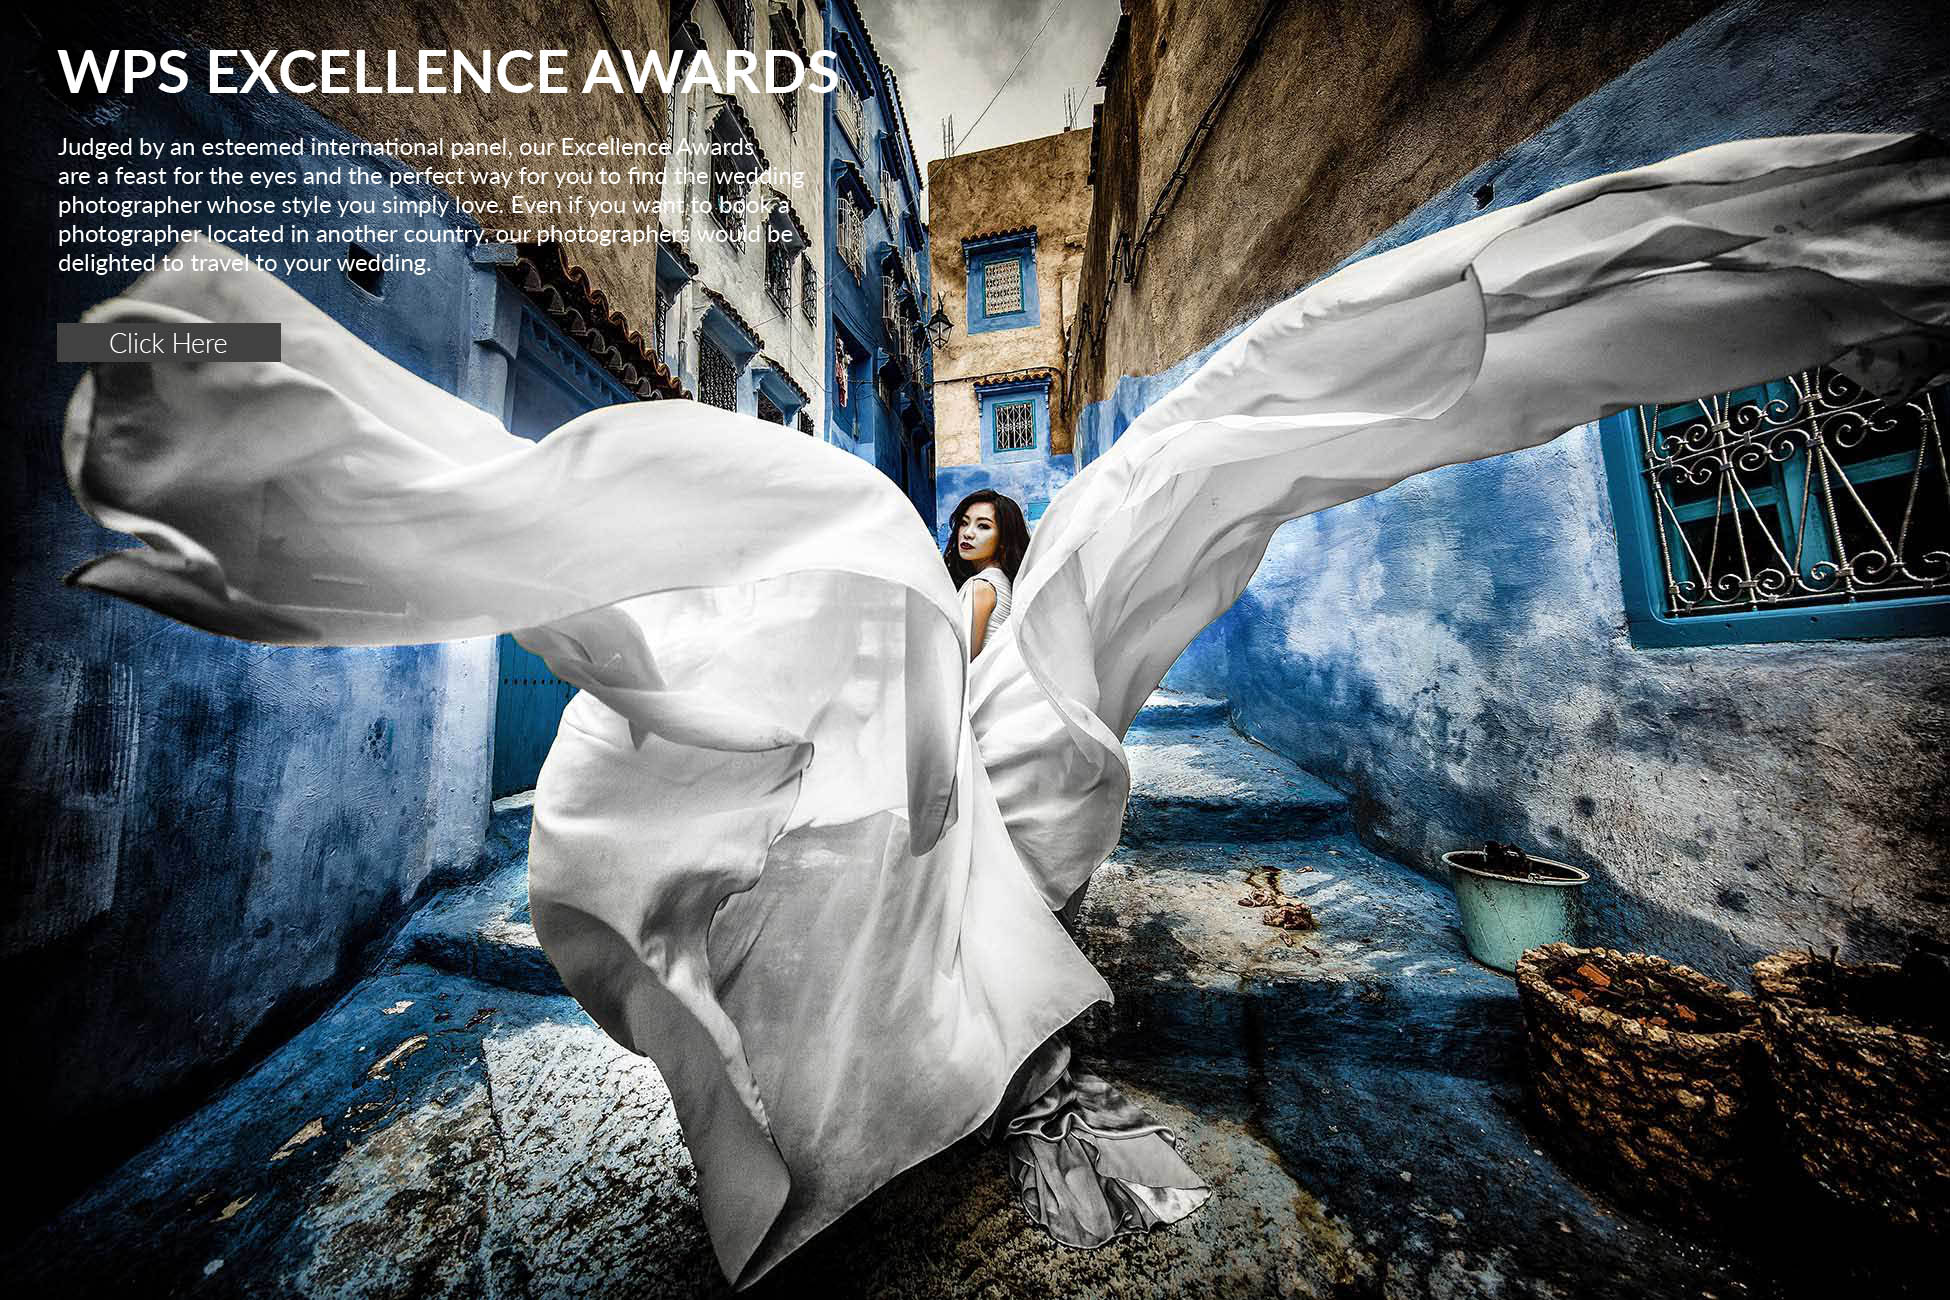 Wedding Photography Excellence Awards